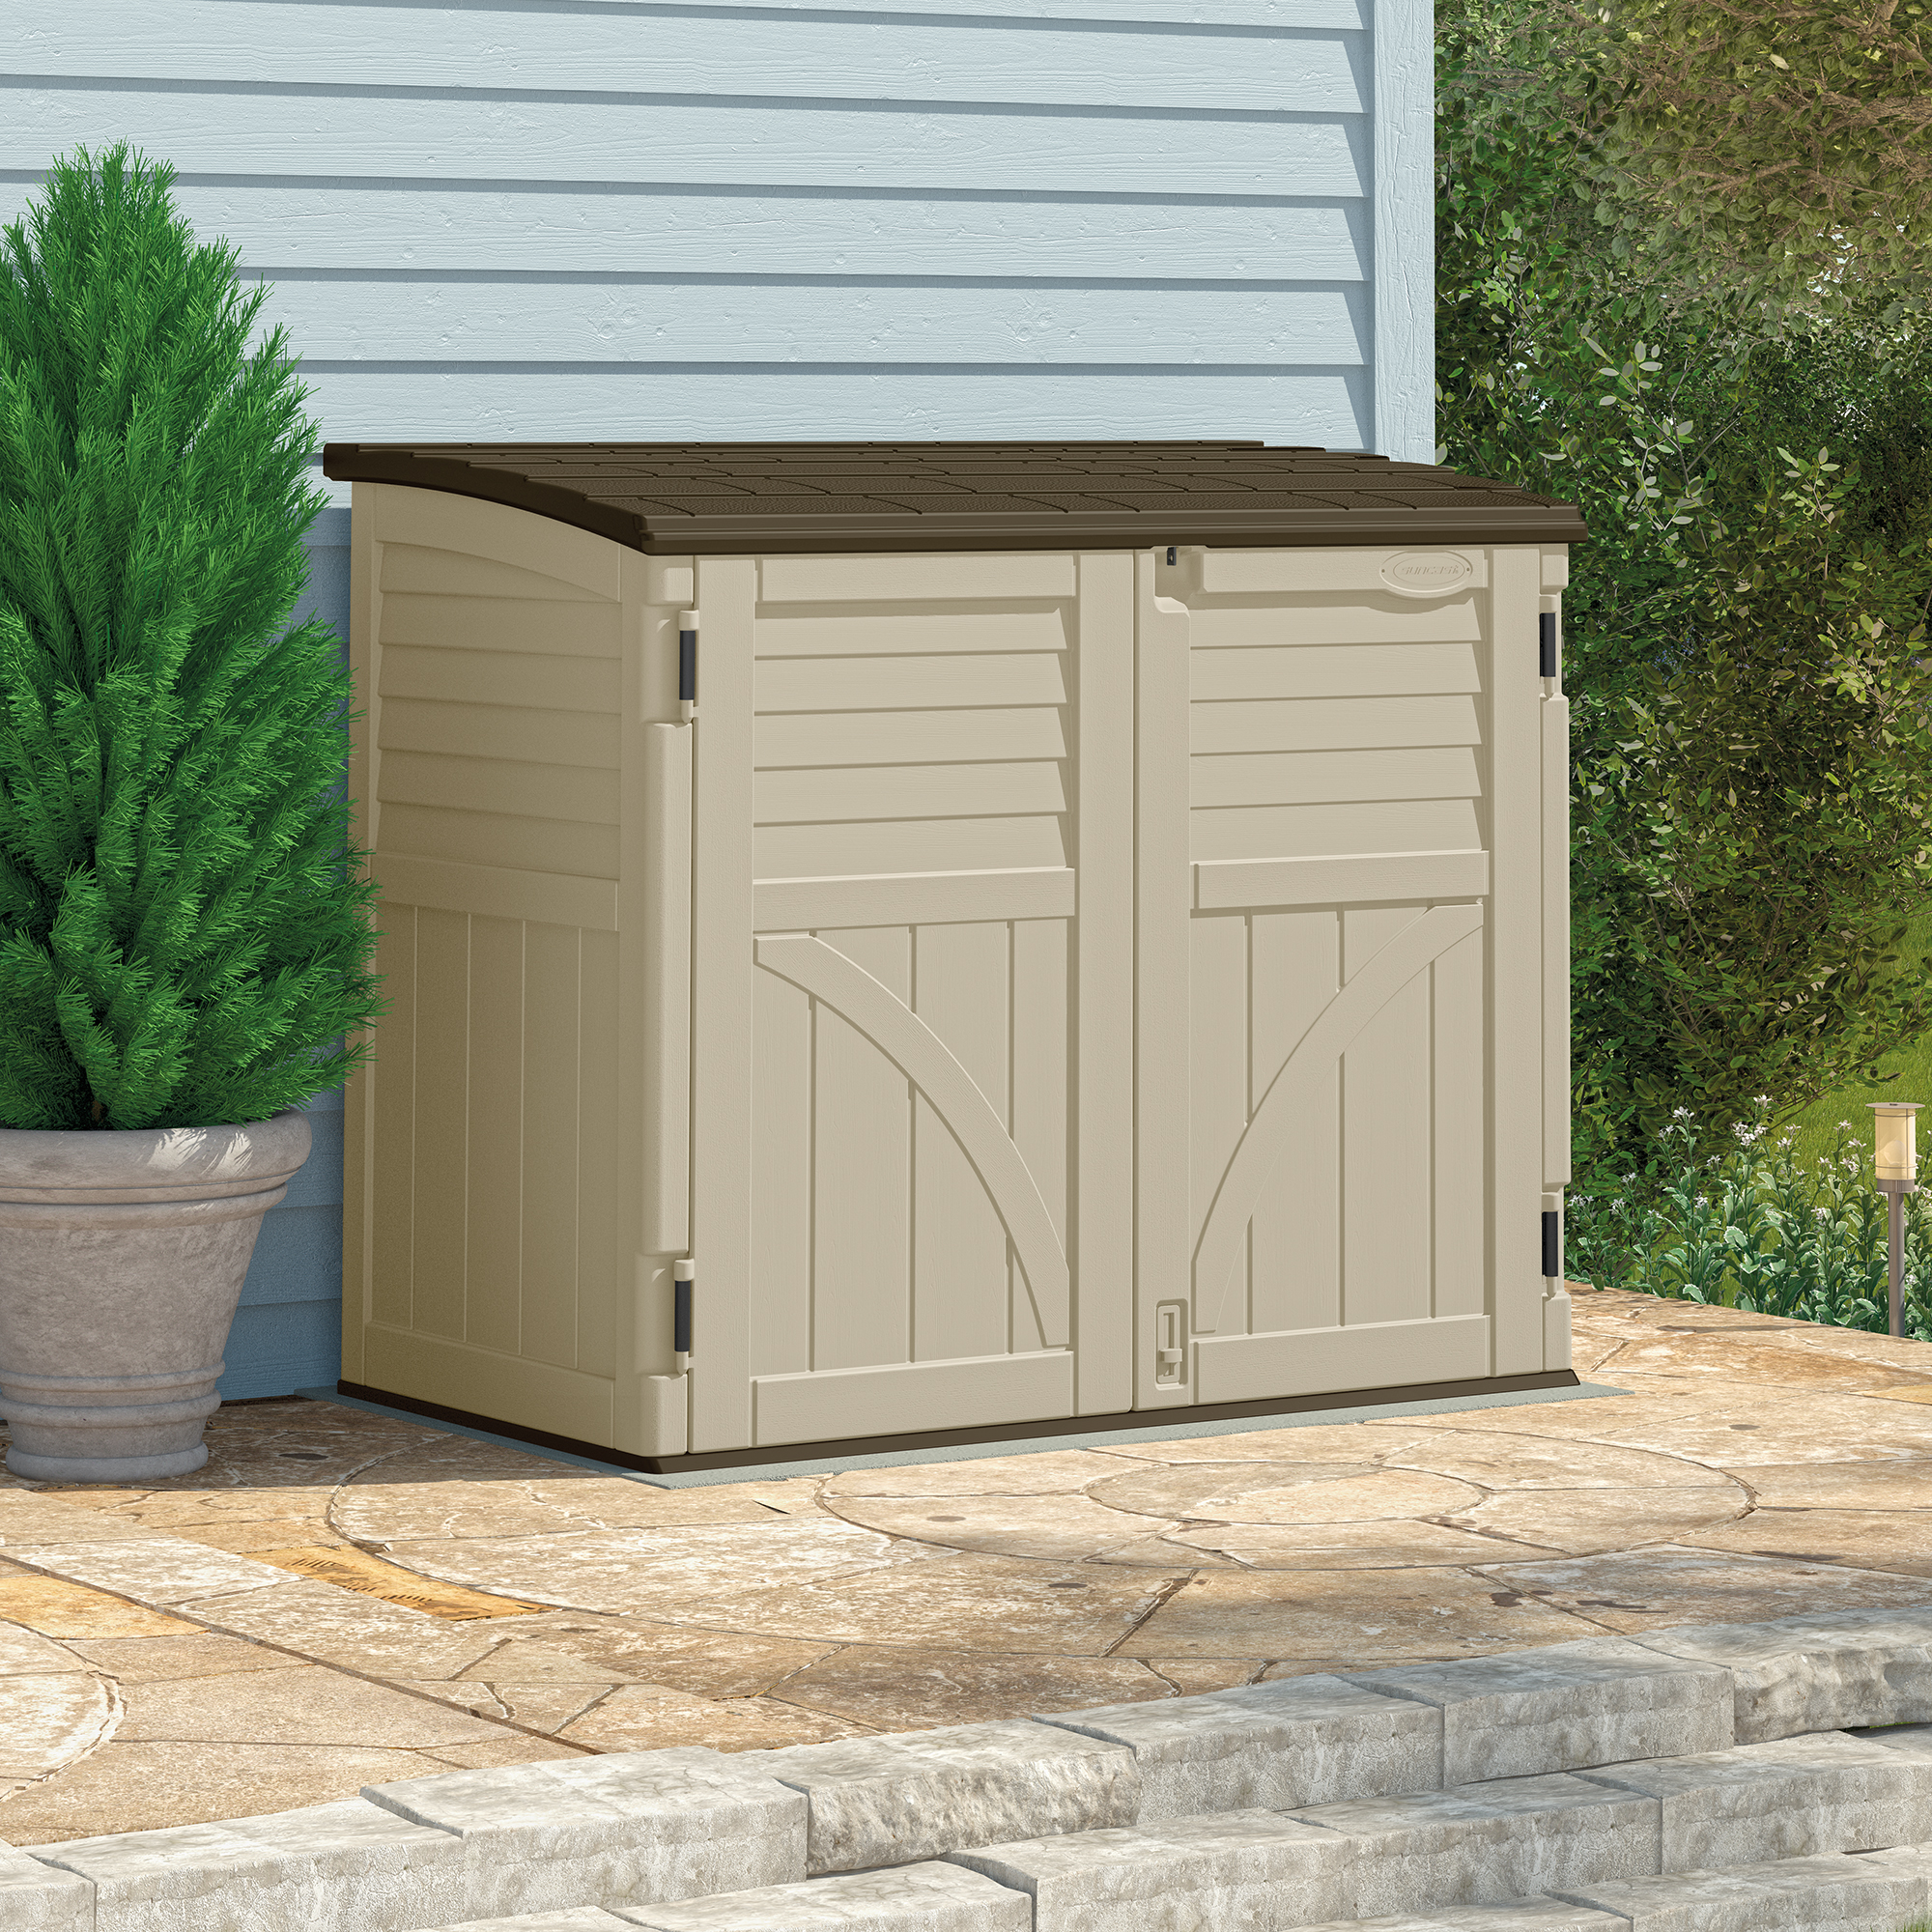 Image of BillyOh Suncast 34ft Horizontal Plastic Storage Garden Shed